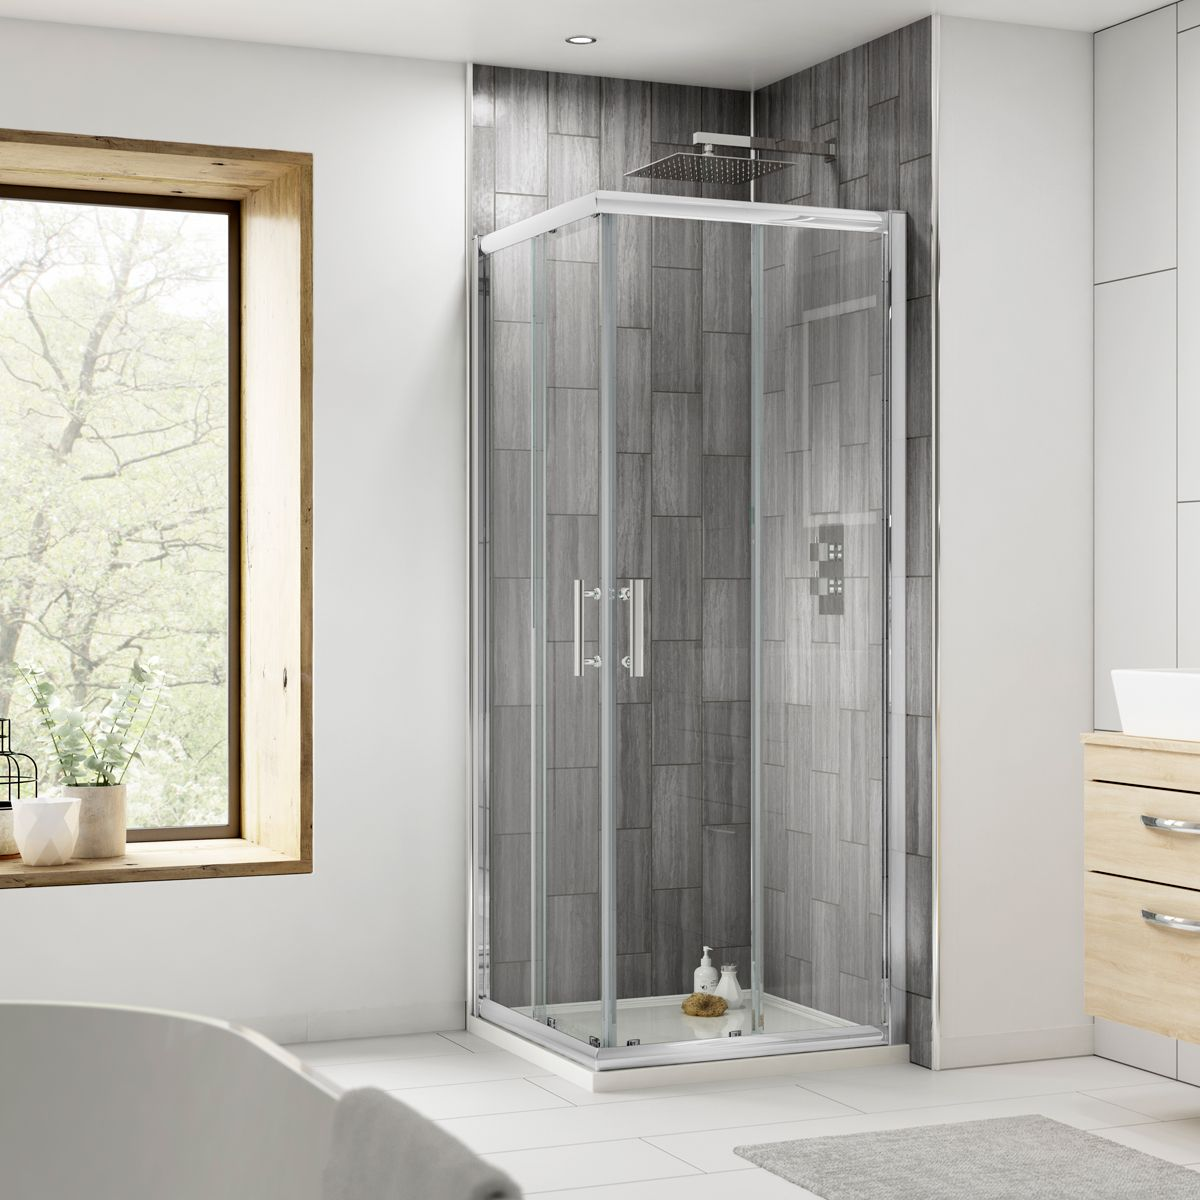 Nuie Pacific Corner Entry Shower Enclosure